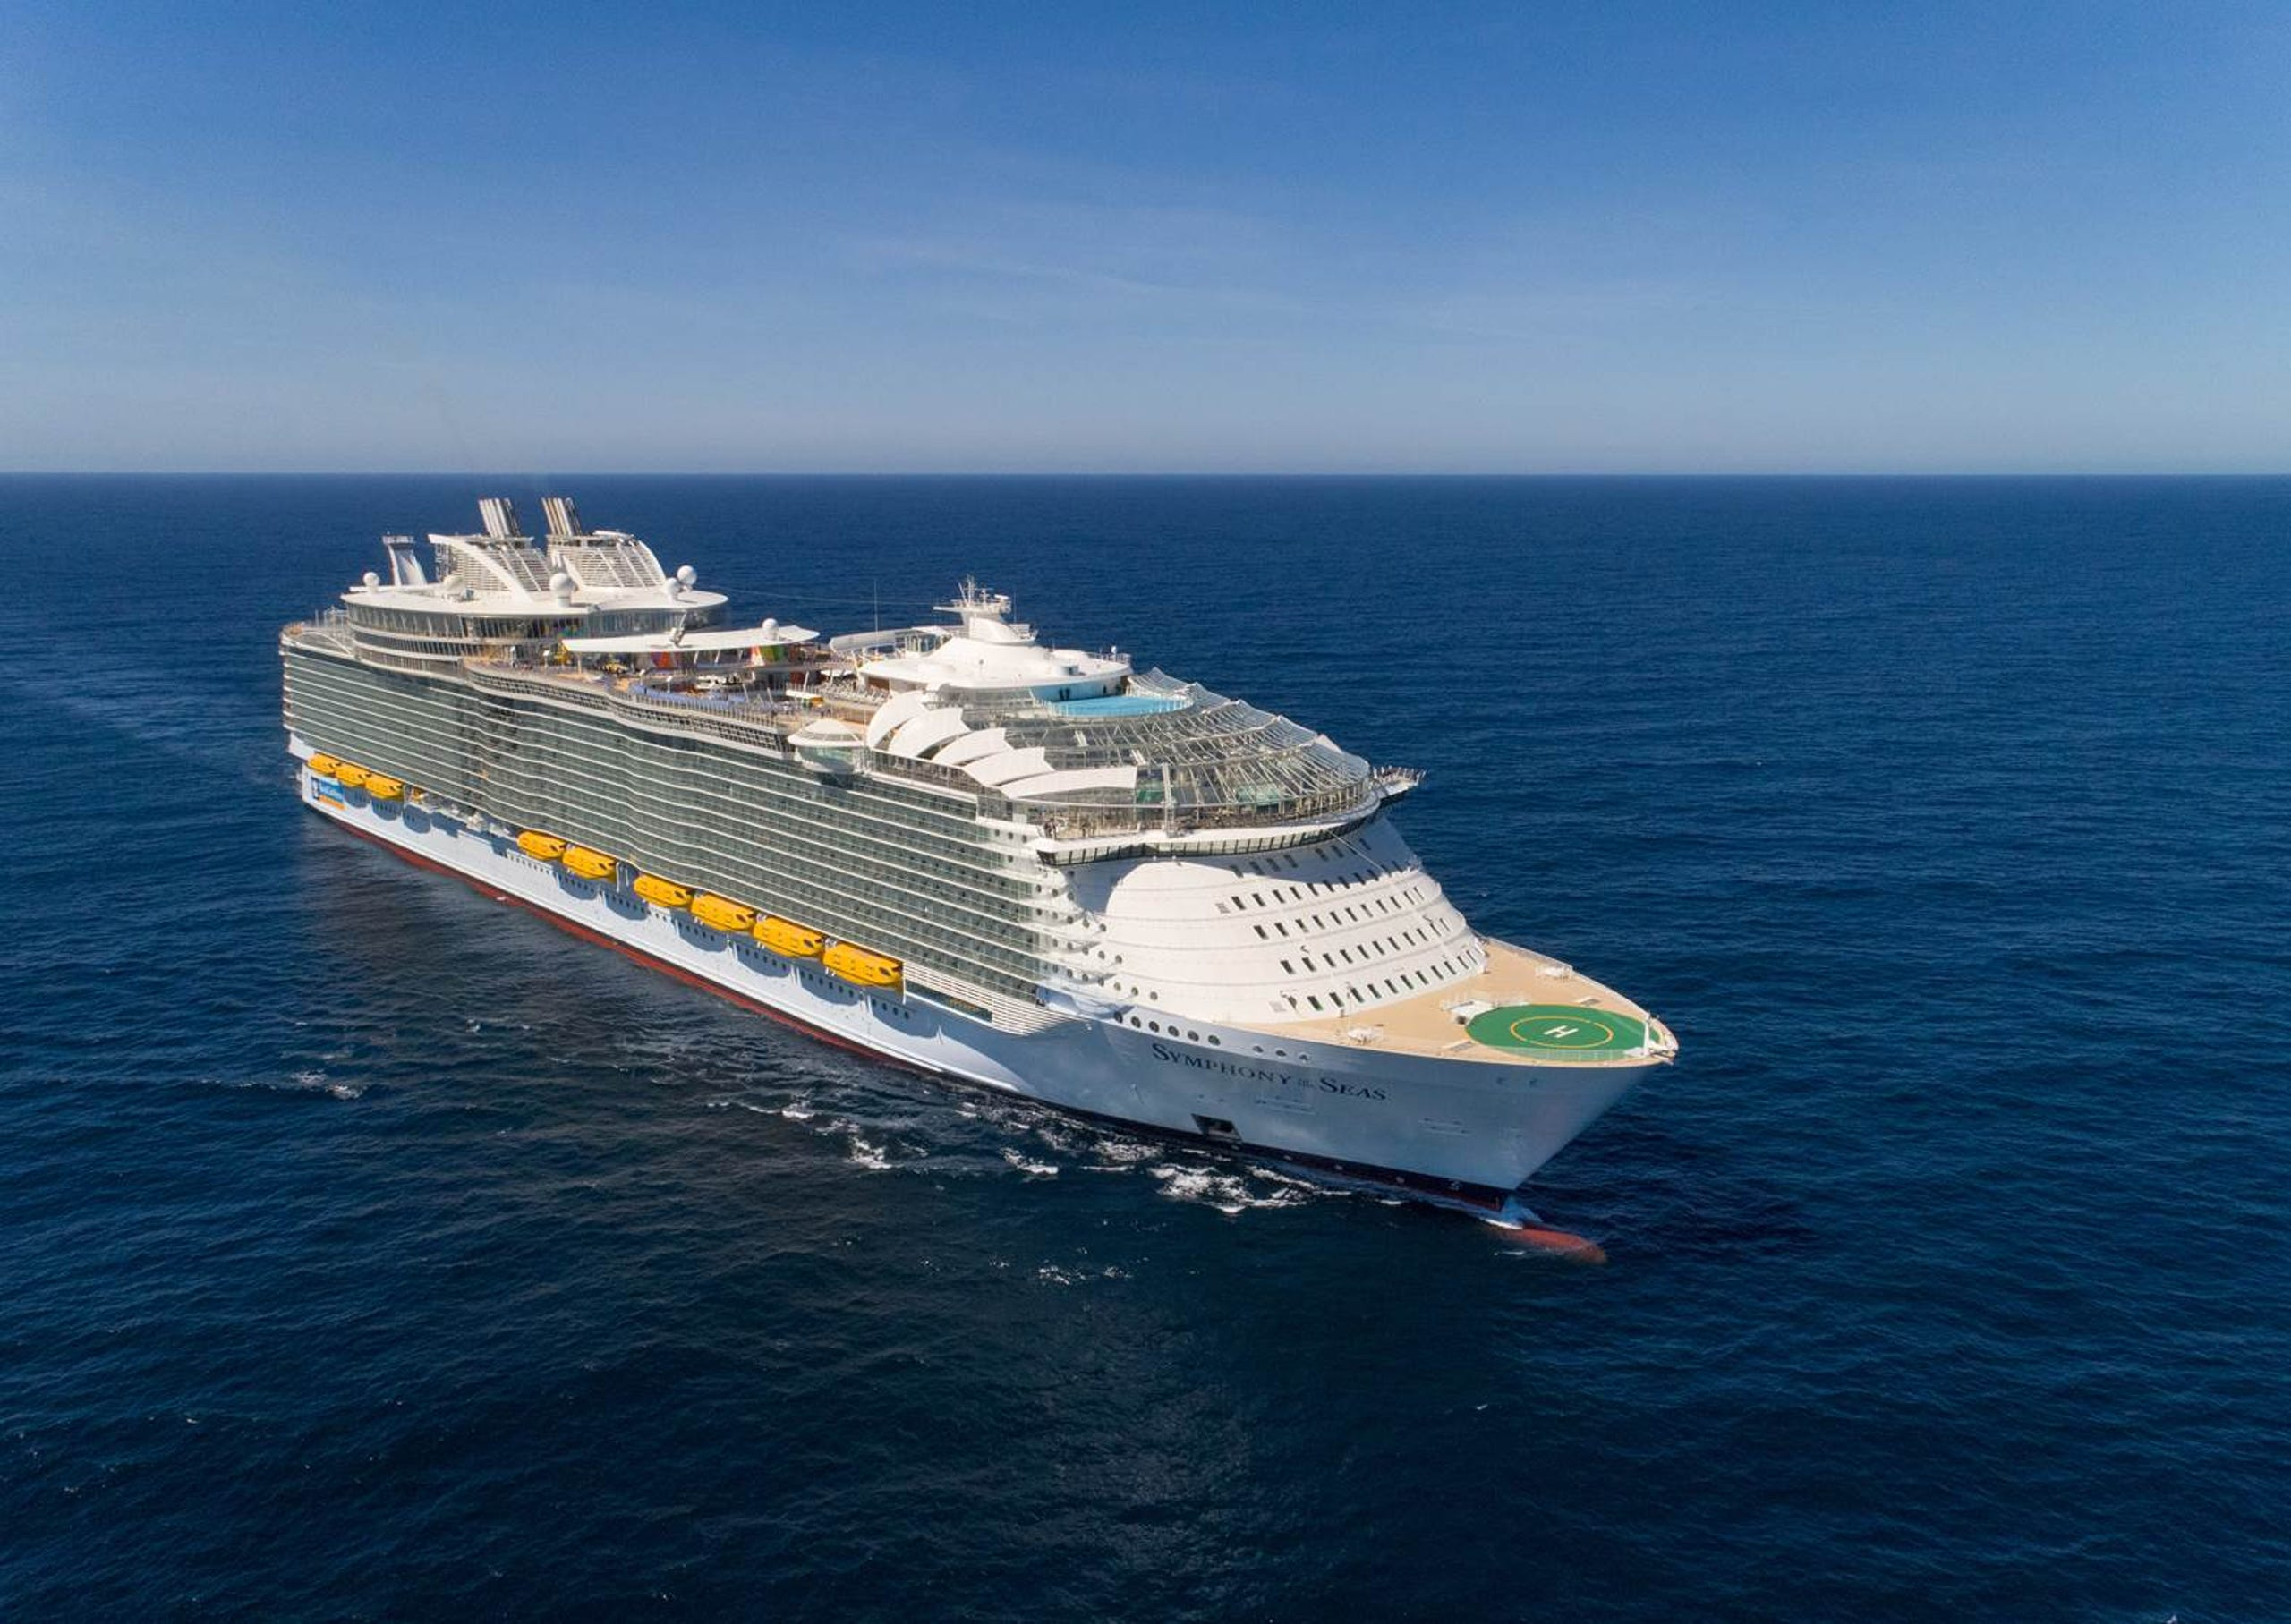 First look: Inside Symphony of the Seas, world's biggest cruise ship